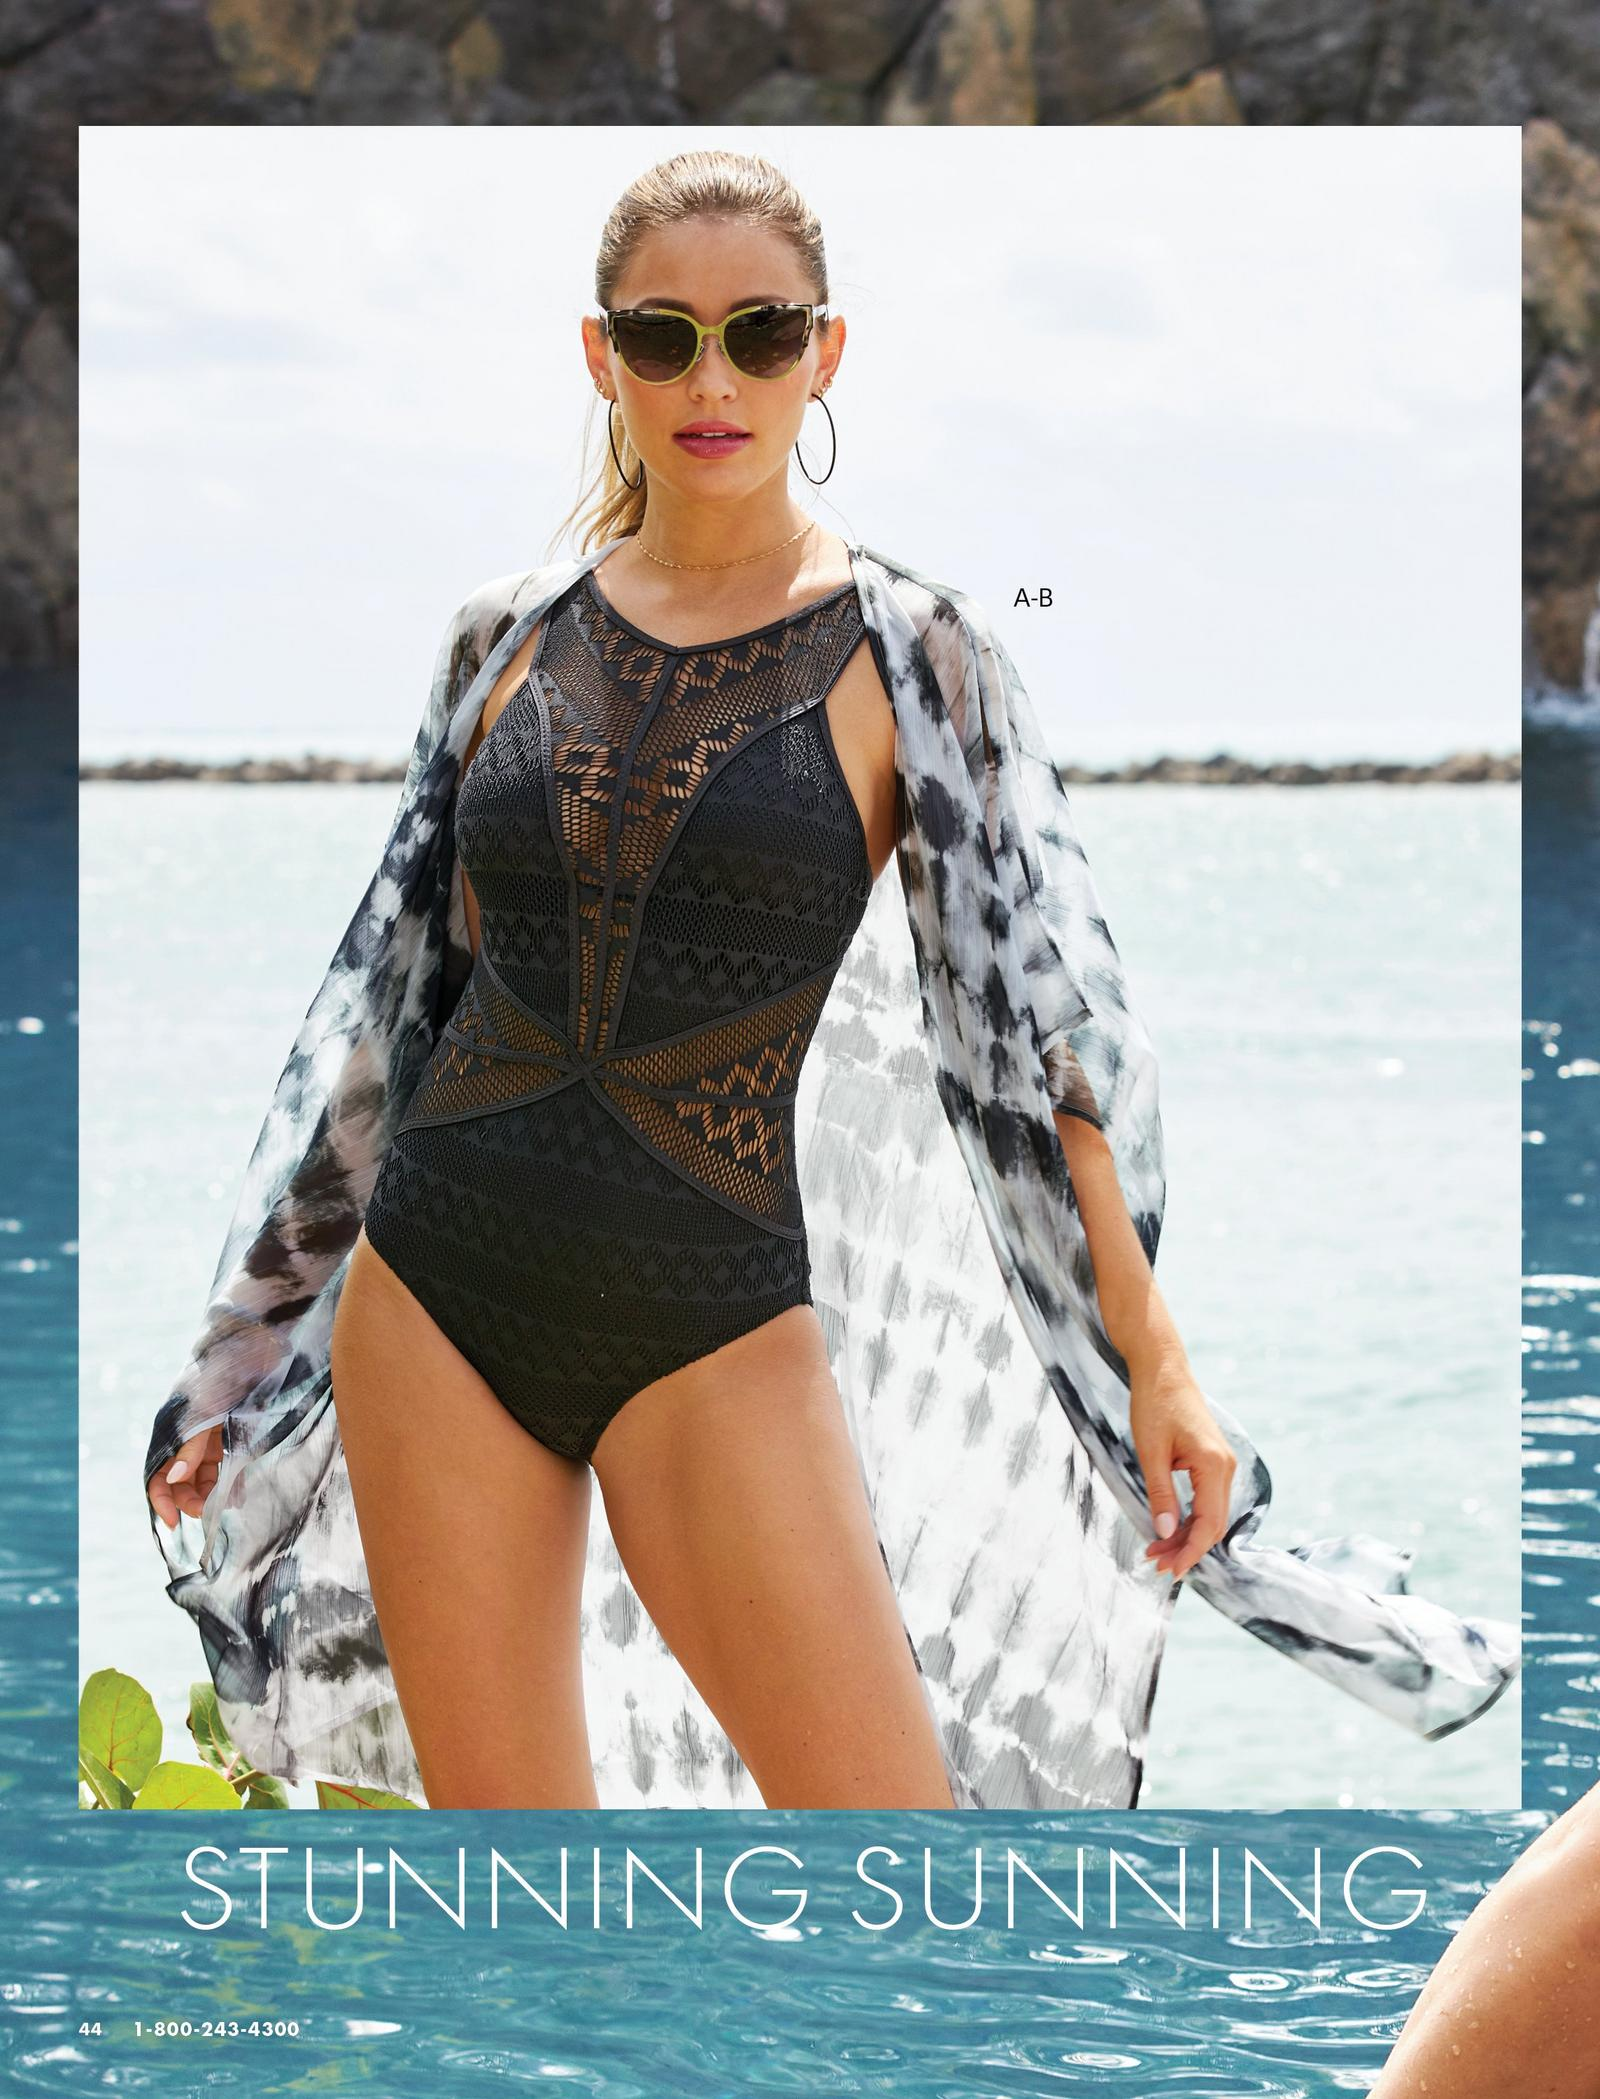 model wearing a black crochet one-piece swimsuit, black and white tie-dye duster cover-up, and sunglasses.